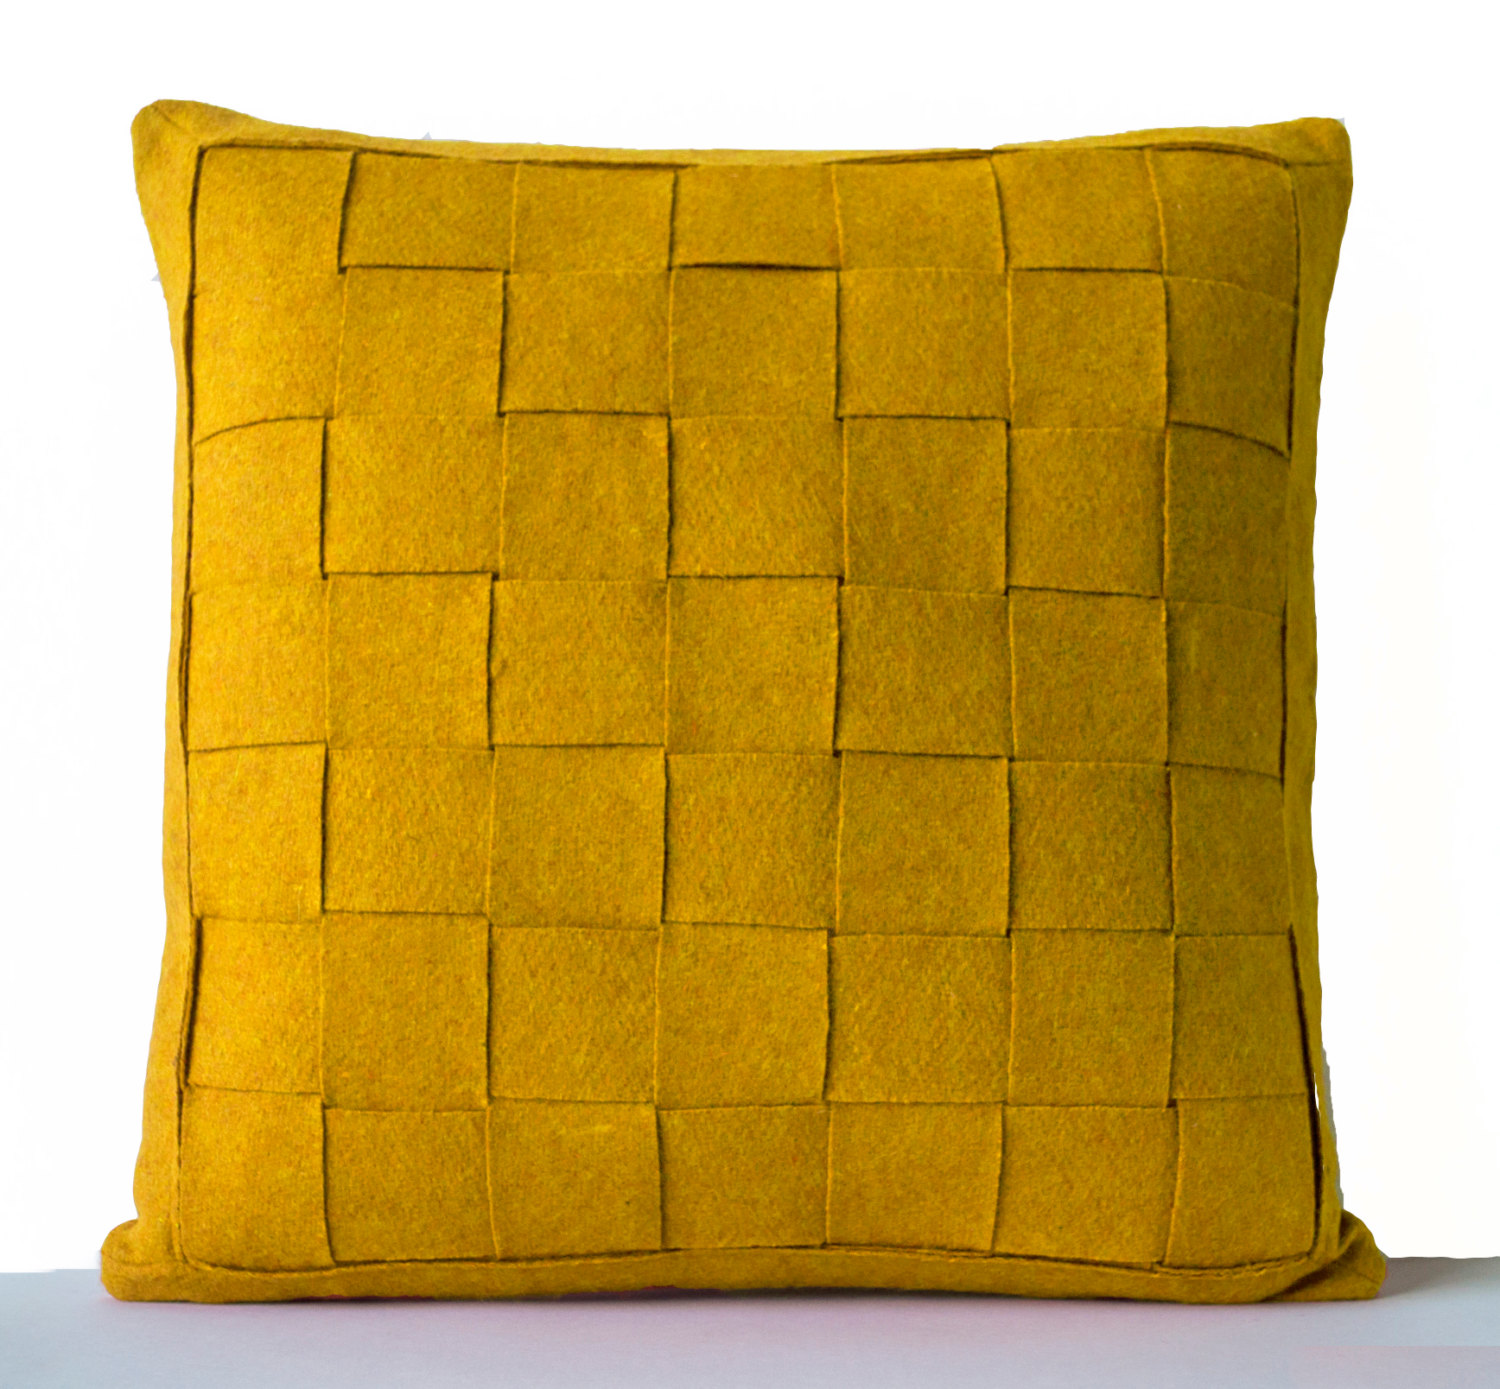 Enchanting yellow throw pillows with 20x20 inches and with true patterns yellow throw pillows for living room ideas